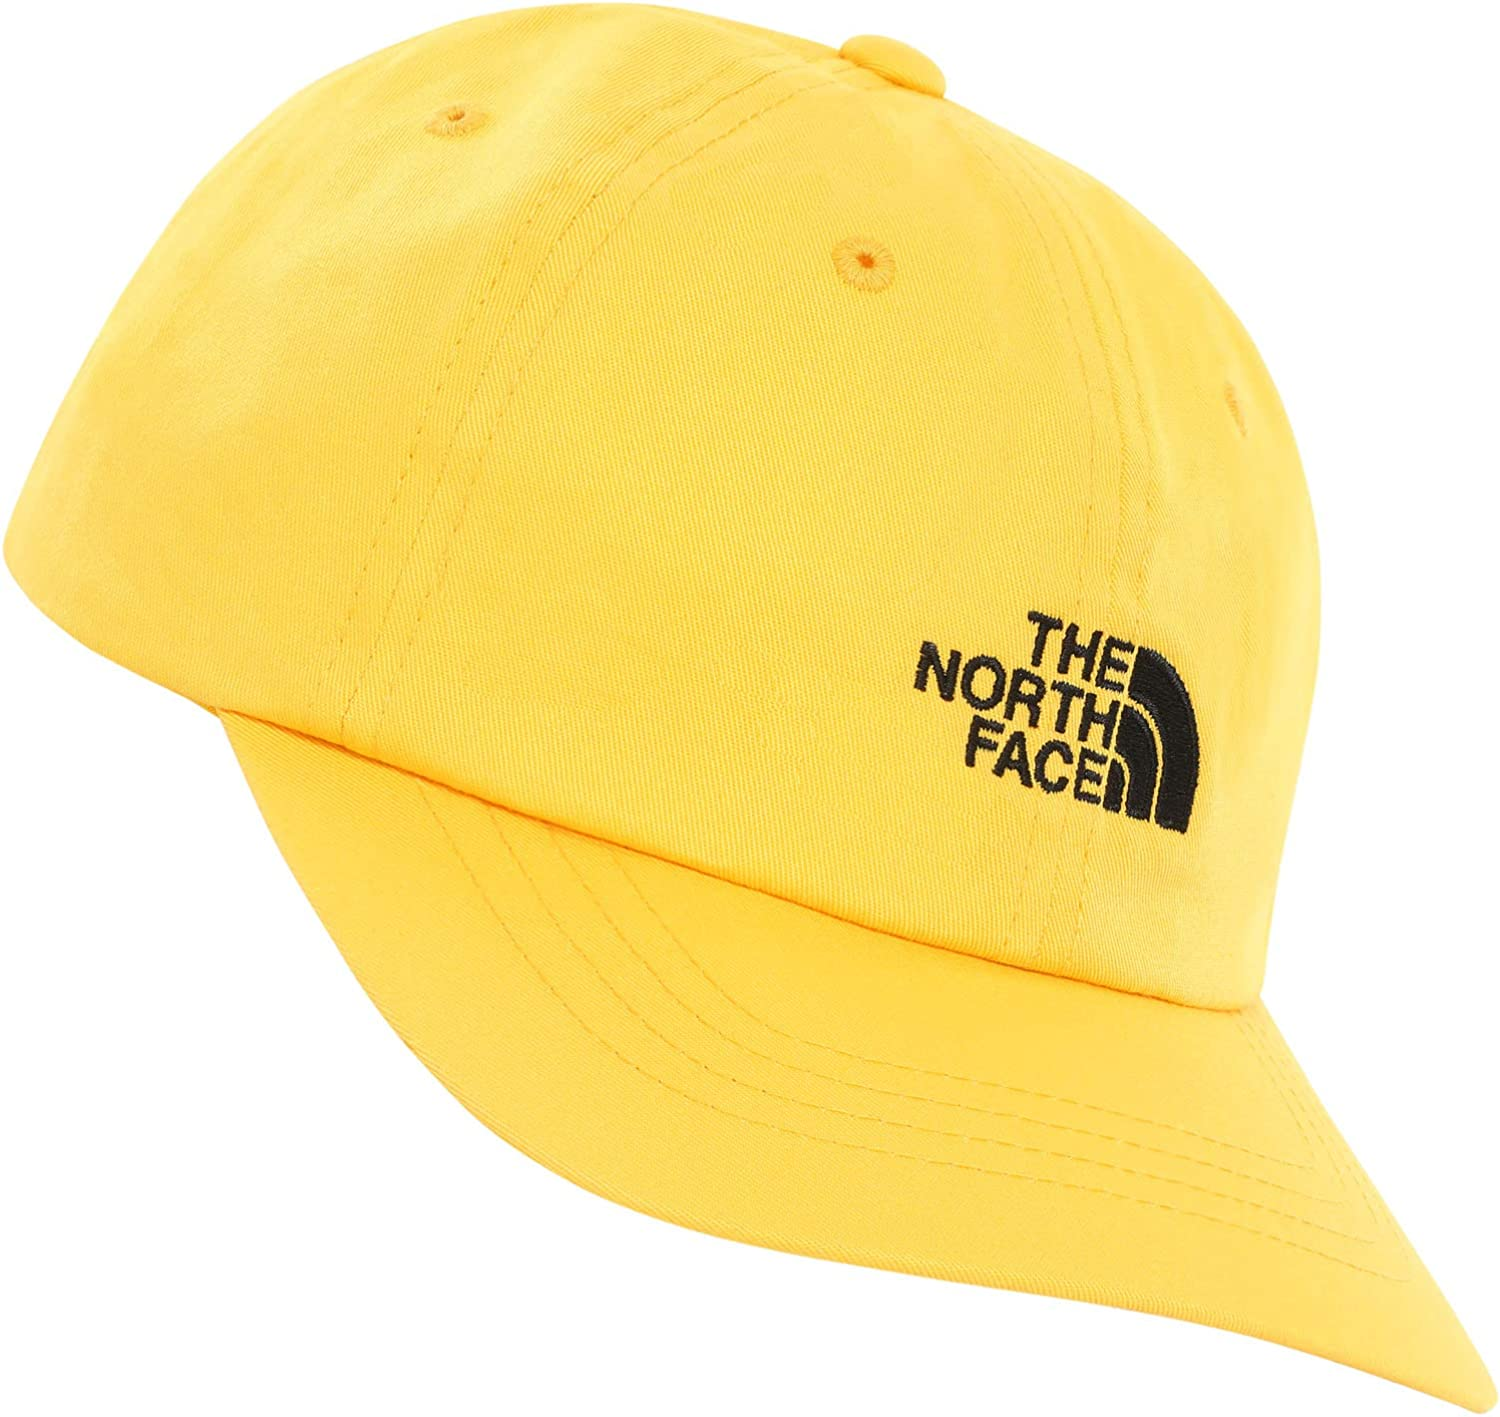 The North Face The Norm Gorra: Amazon.es: Ropa y accesorios